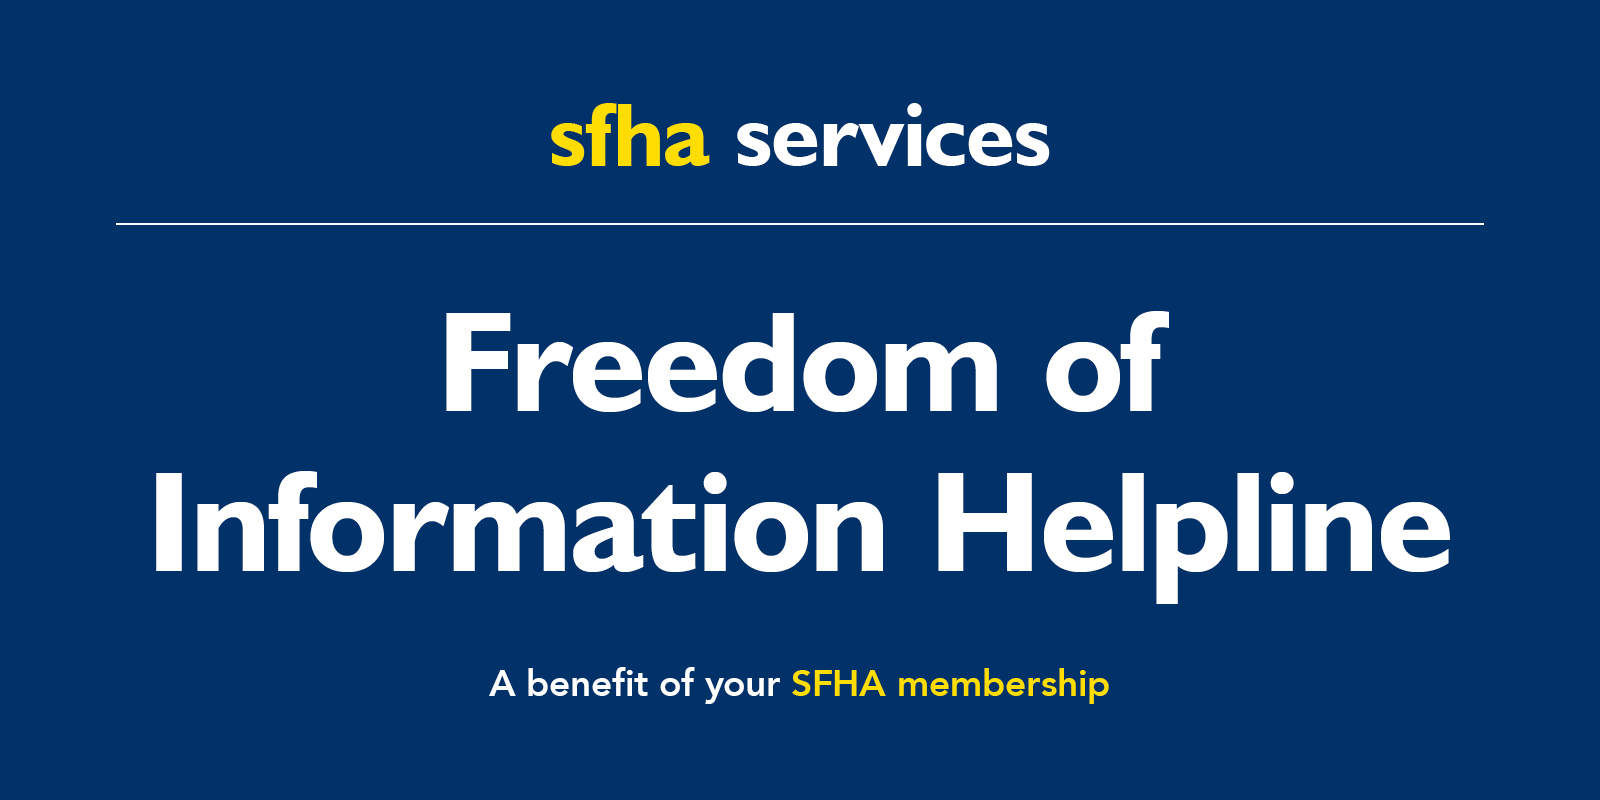 Freedom of information helpline – A benefit of your SFHA membership